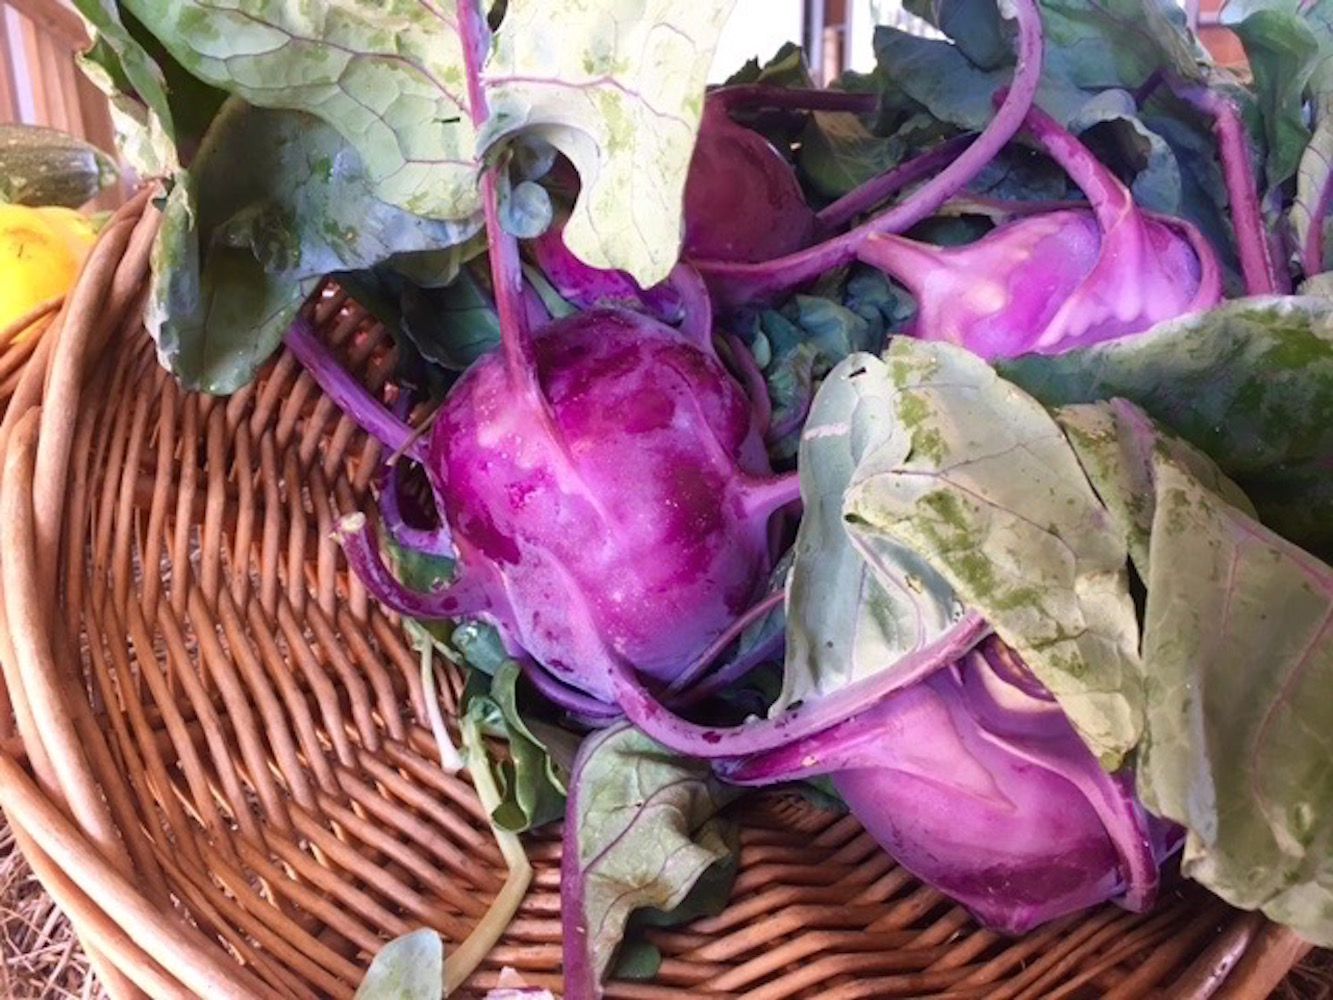 Purple Kohlrabi in Basket